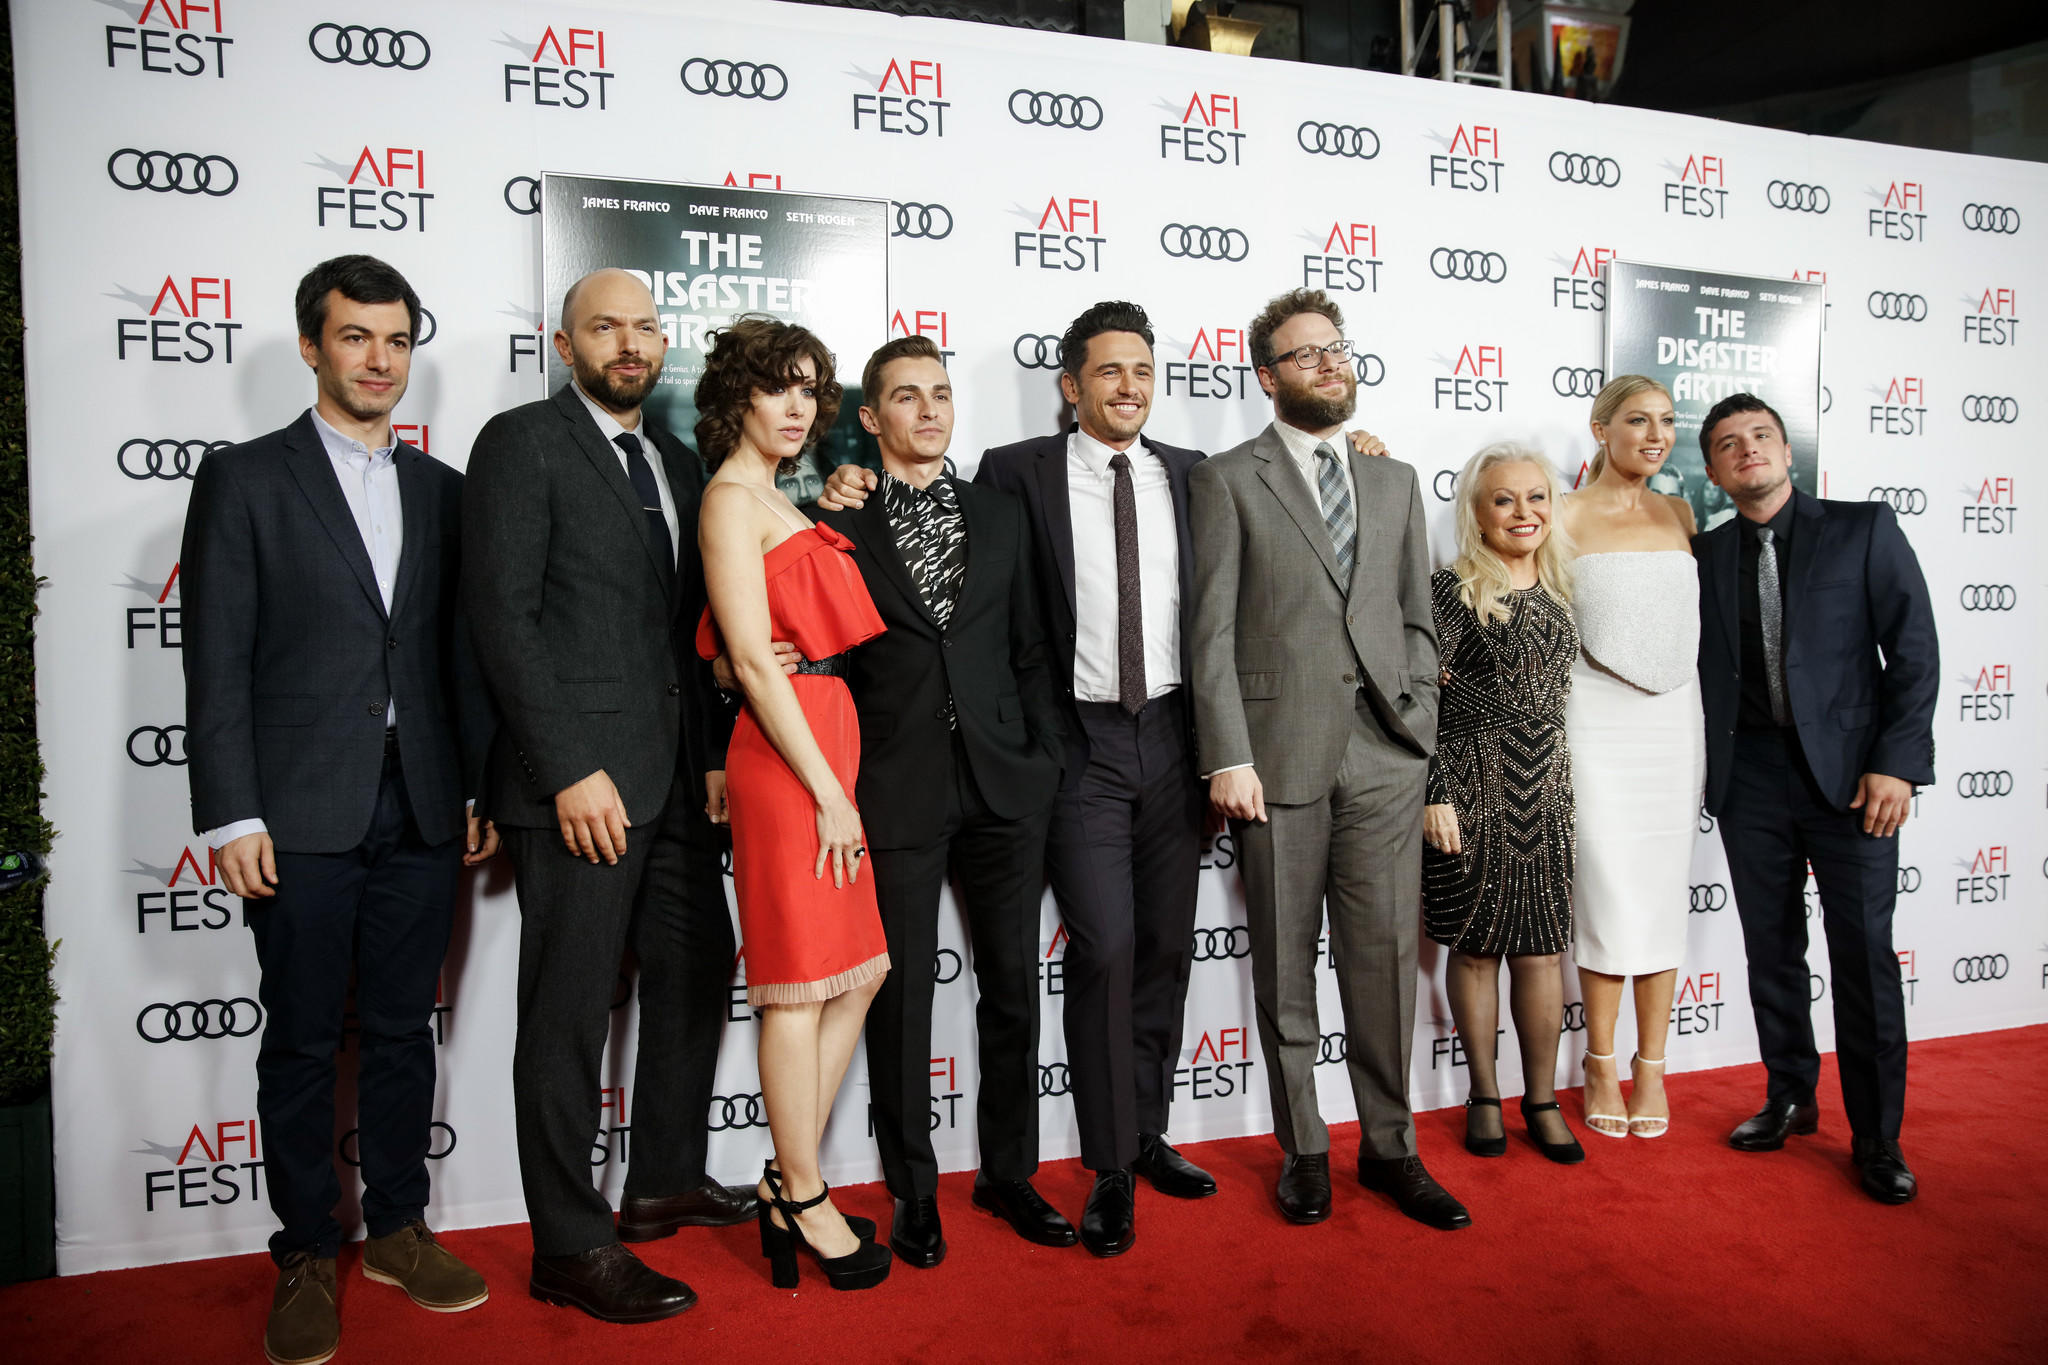 Nathan Fielder, Paul Scheer, Alison Brie, Dave Franco, James Franco, Seth Rogen, Jacki Weaver, Ari Graynor, and Josh Hutcherson pose on the red carpet for the AFI Fest 2017 Gala presentation of (Jay L. Clendenin / Los Angeles Times)